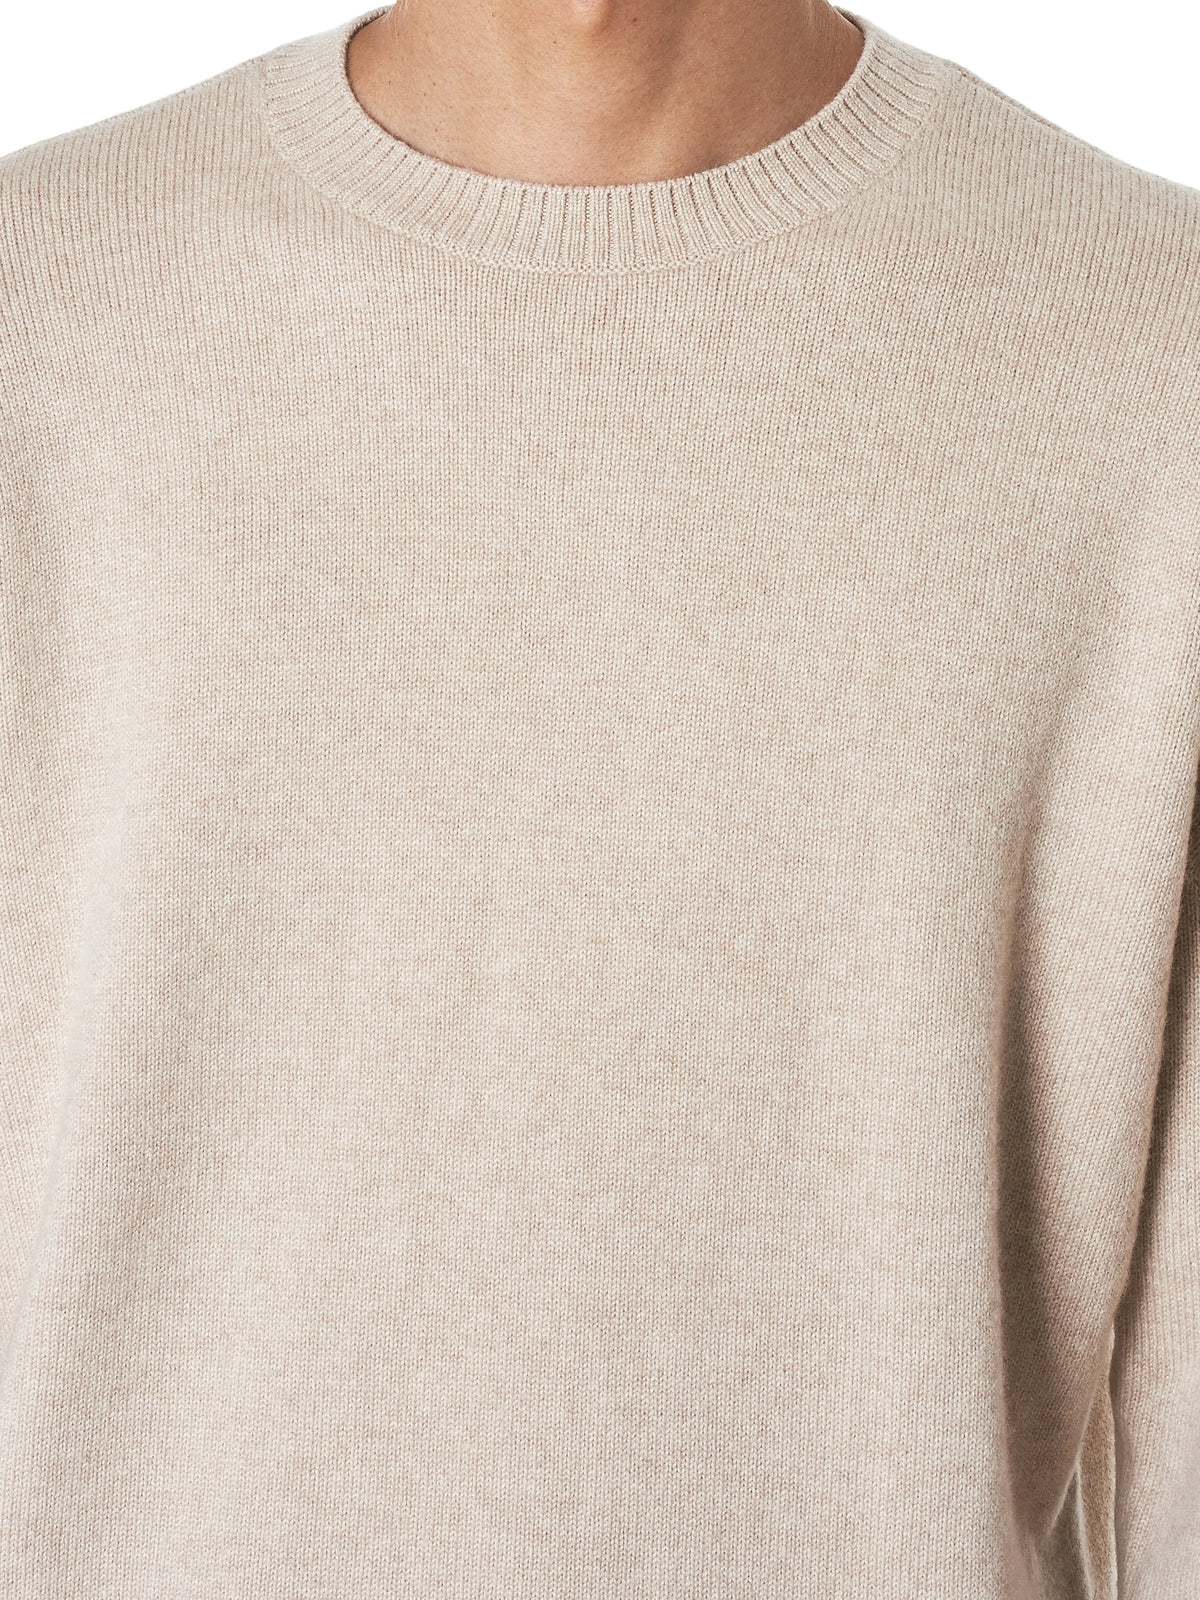 2John Elliot Sweater - Hlorenzo Detail 1